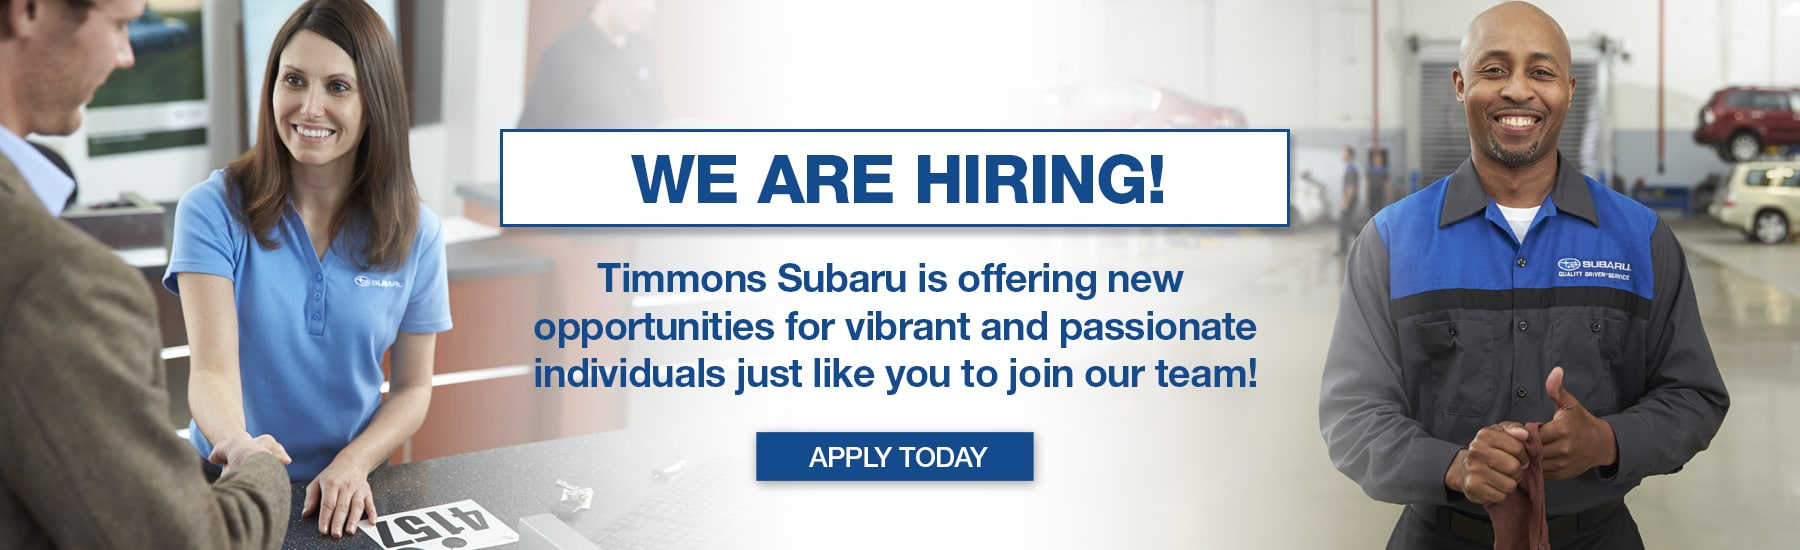 Join the Timmons Subaru of Long Beach Team. See Job Opportunities available now!